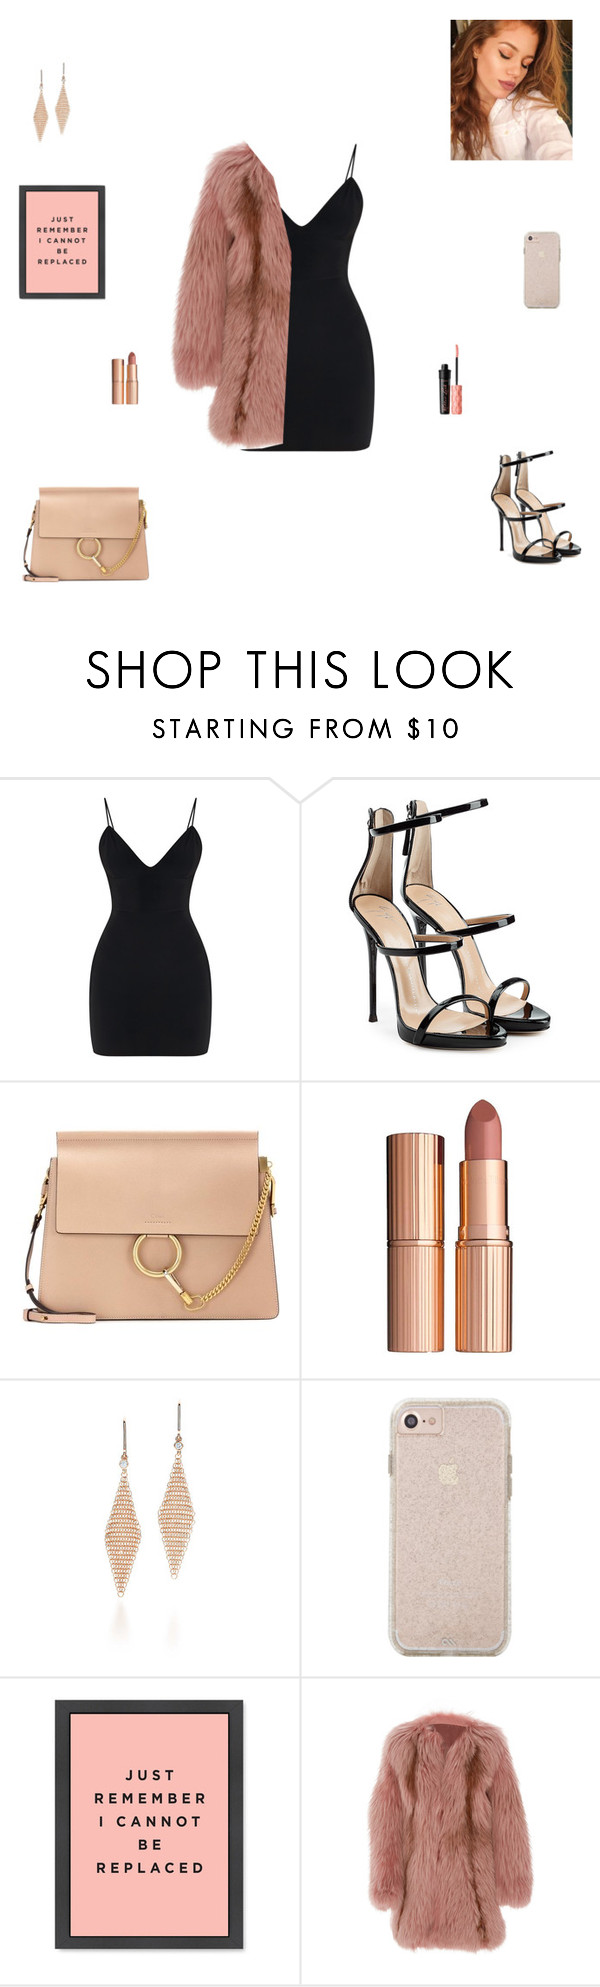 """can't be replaced"" by synclairel ❤ liked on Polyvore featuring Giuseppe Zanotti, Chloé, Charlotte Tilbury, Tiffany & Co., J. Mendel, Benefit, Winter, cute, casual and ootd"